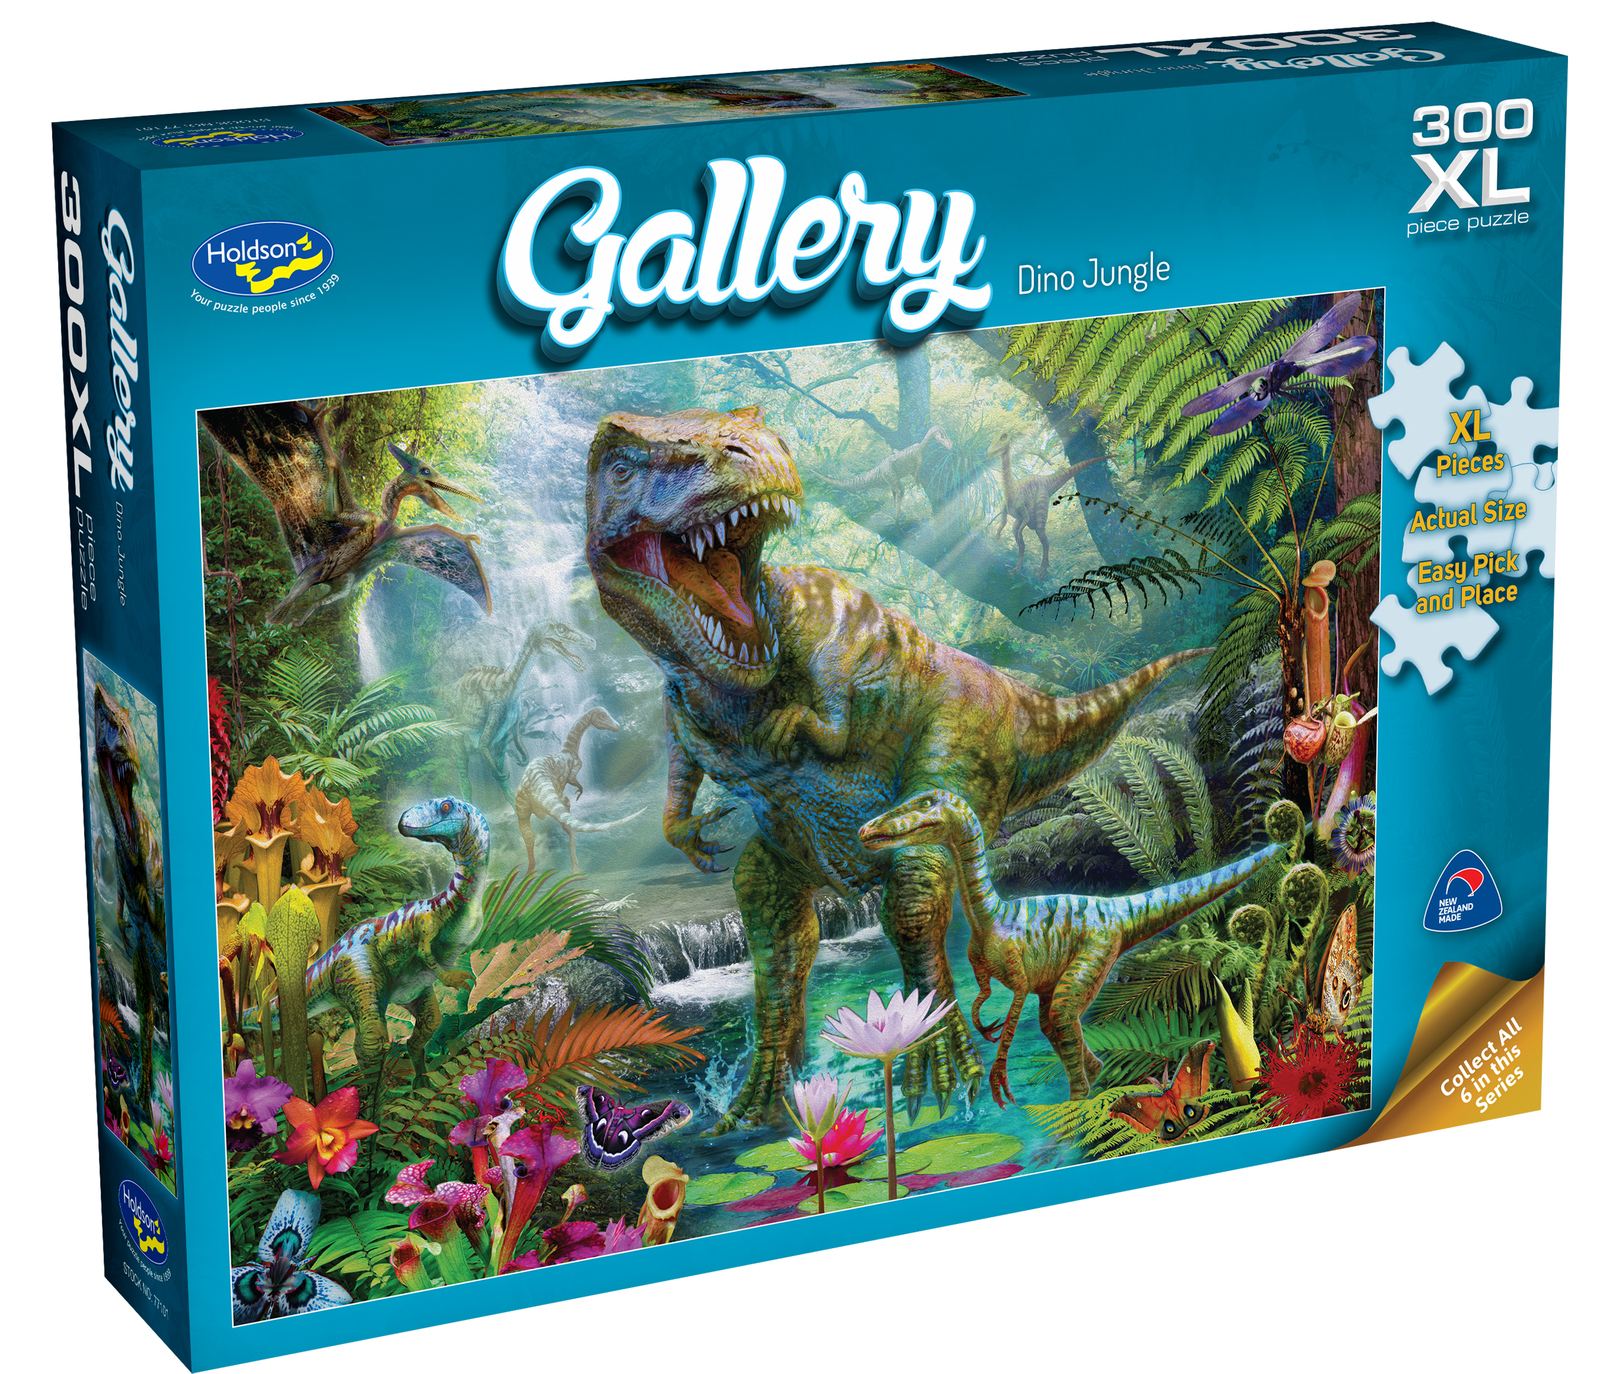 Holdson XL: 300 Piece Puzzle - Gallery (Dino Jungle) image